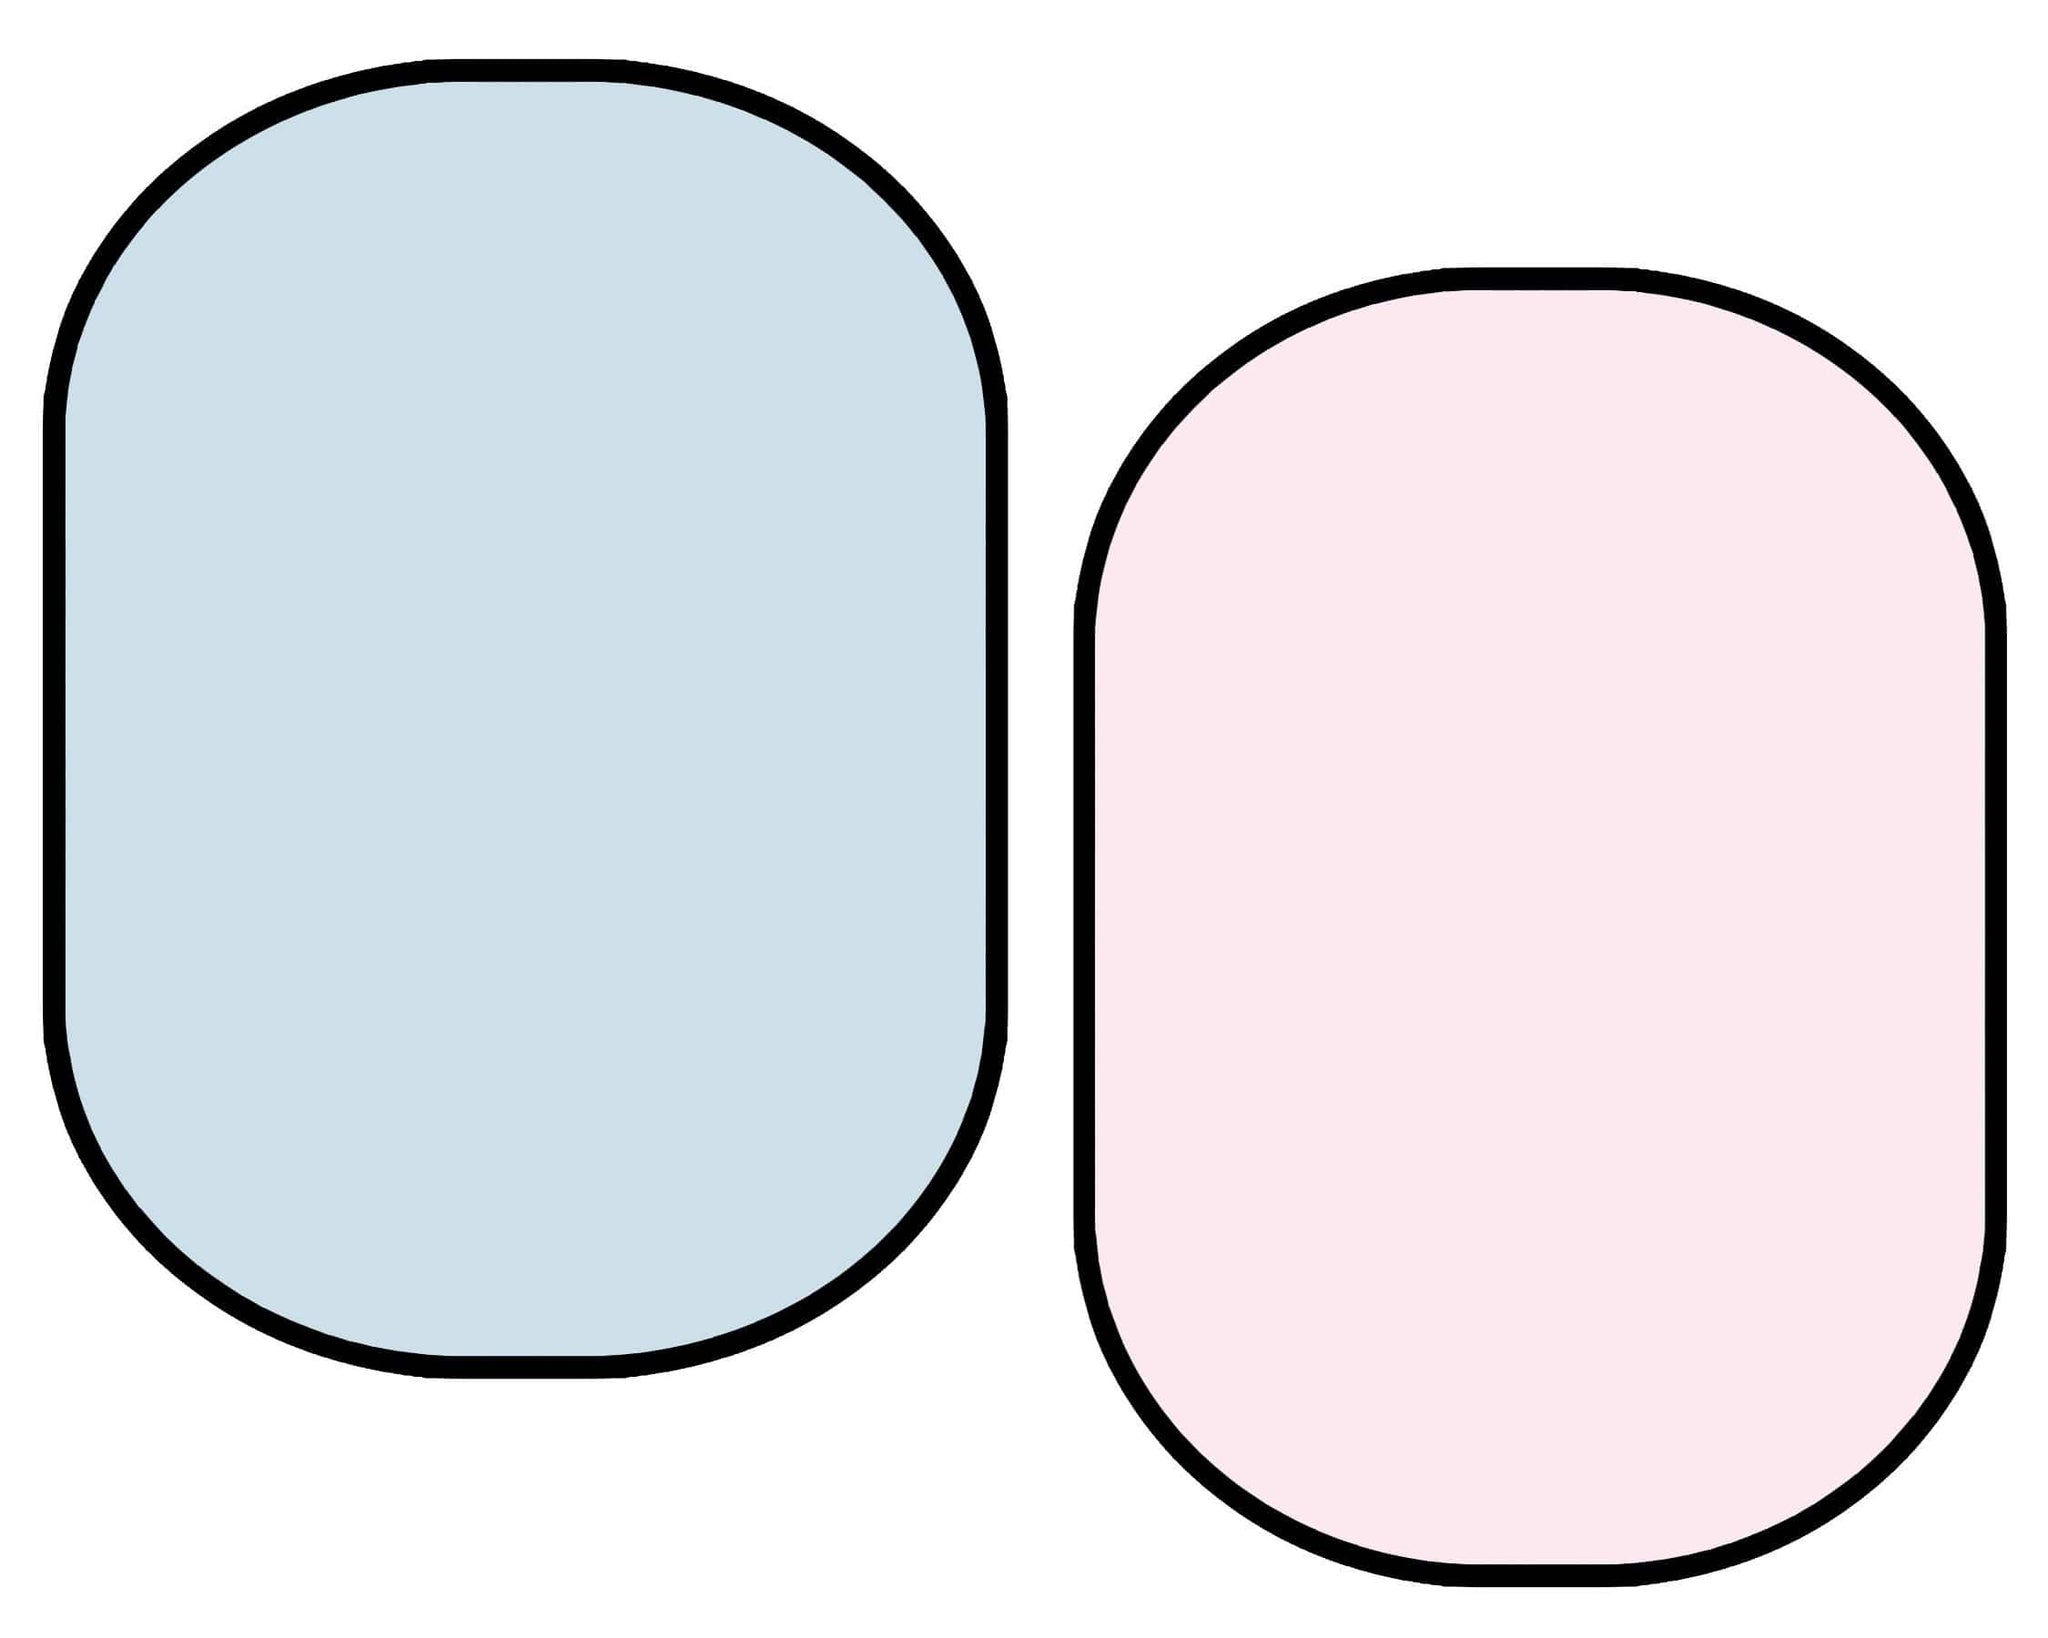 Load image into Gallery viewer, Katebackdrop£ºKate Solid Light Blue/ Solid Light Pink Collapsible Backdrop Photography 5X6.5ft(1.5x2m)